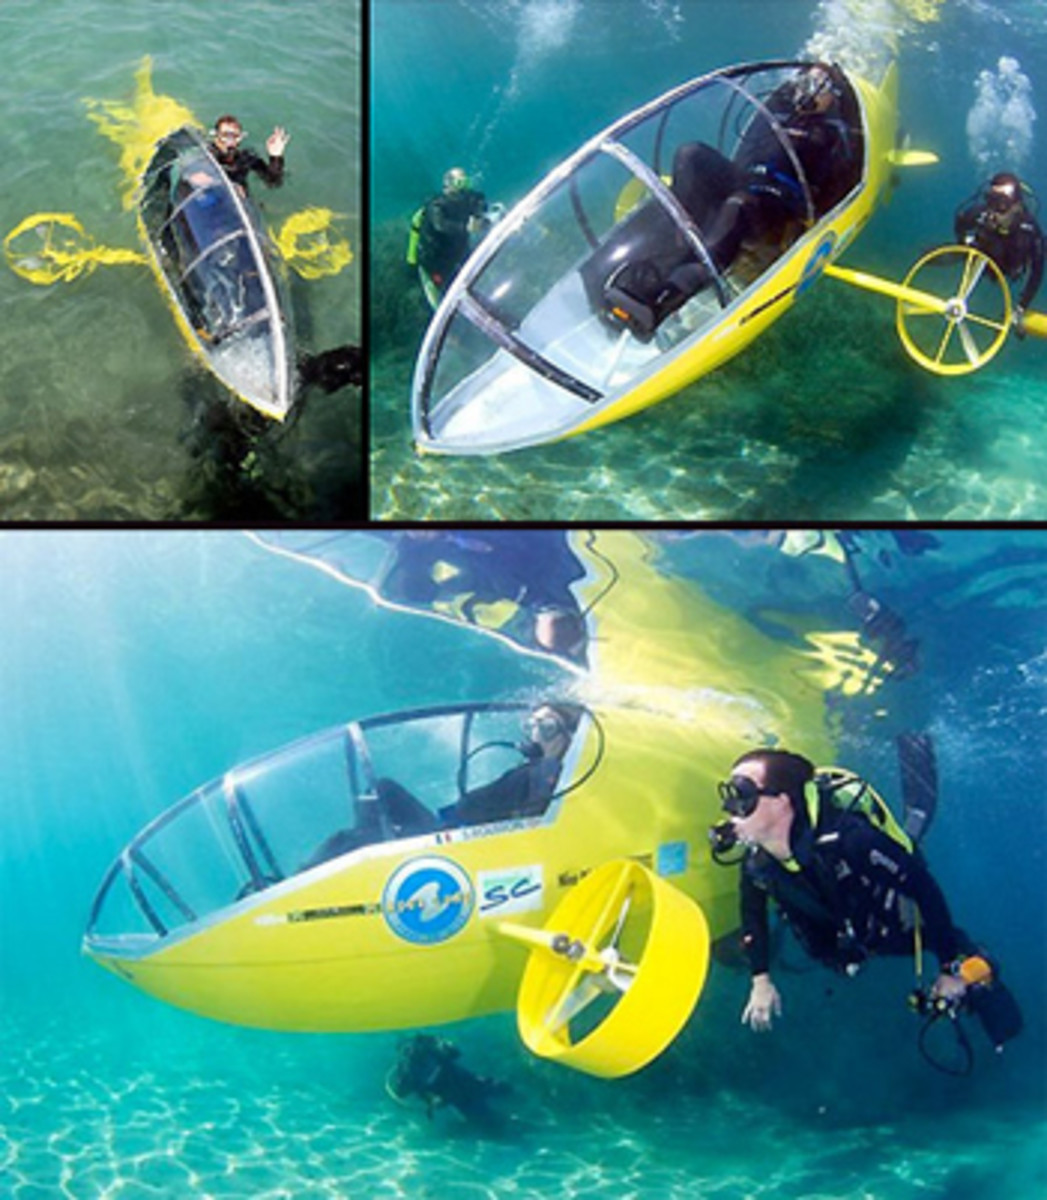 http://blog.sierratradingpost.com/in-outdoors-camping-gear-forest-trails/introducing-the-first-pedal-powered-submarine/